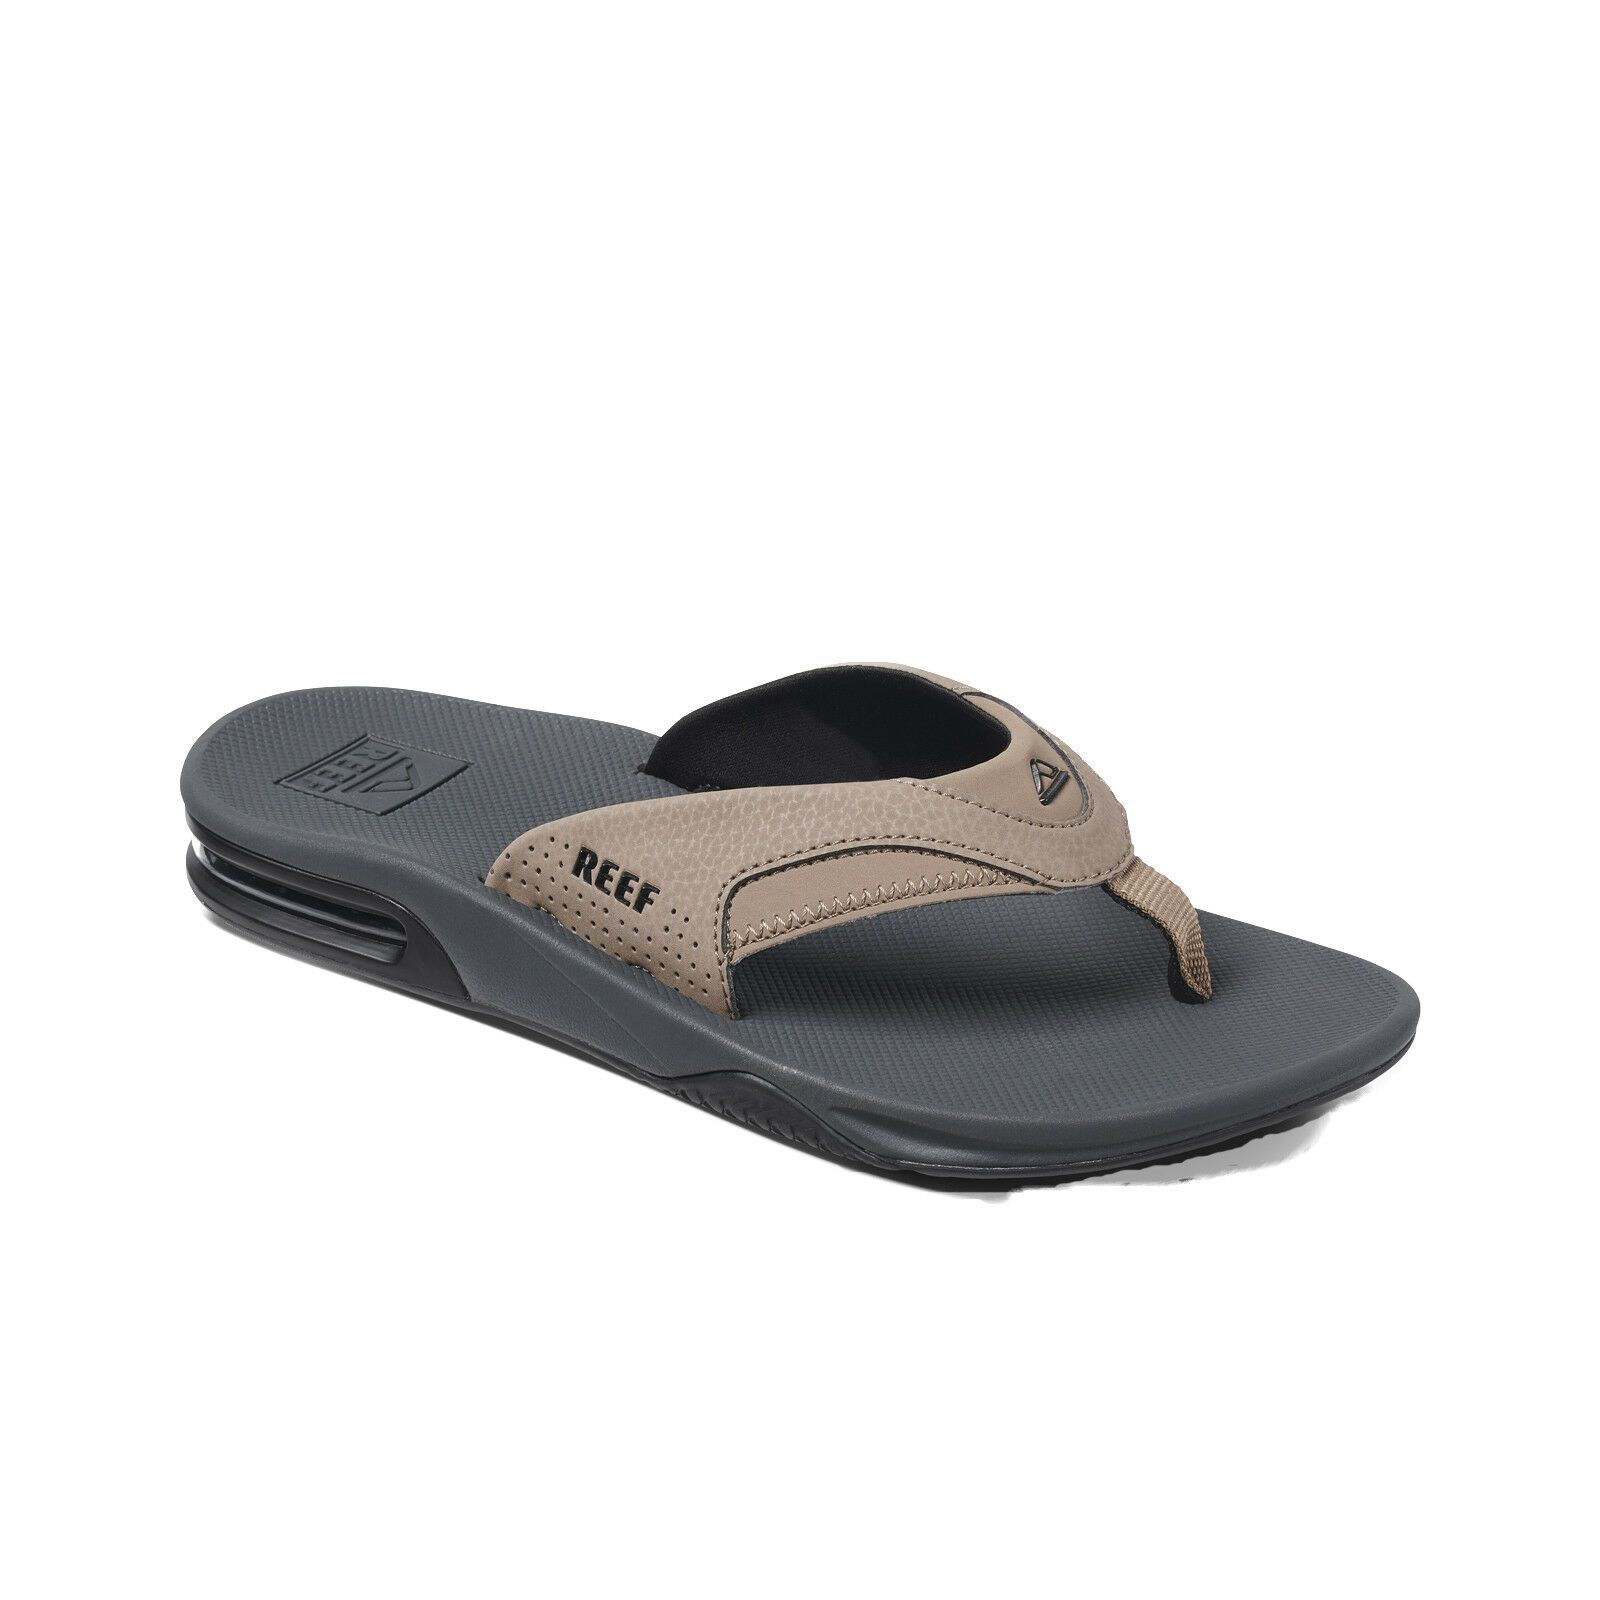 7eb560ae4e35 REEF MENS FLIP FLOPS.FANNING TAN BLACK ARCH SUPPORT THONGS SANDALS SHOES 9S  6 TB